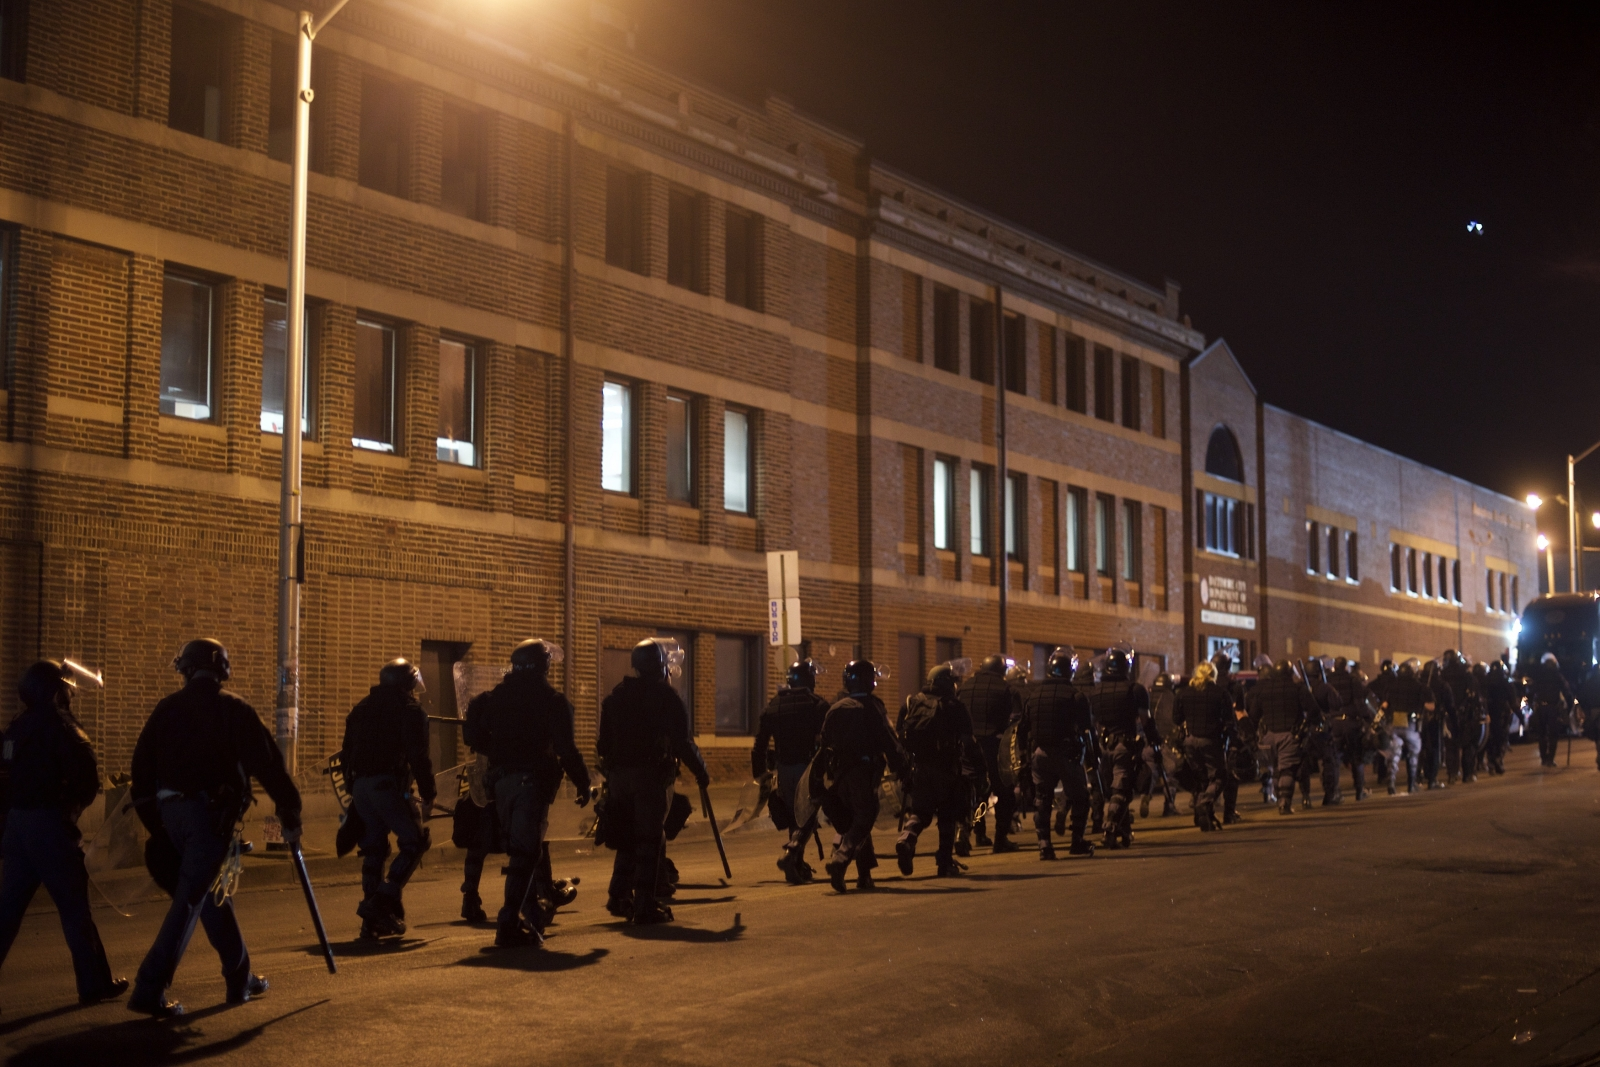 National Guards deployed in Baltimore